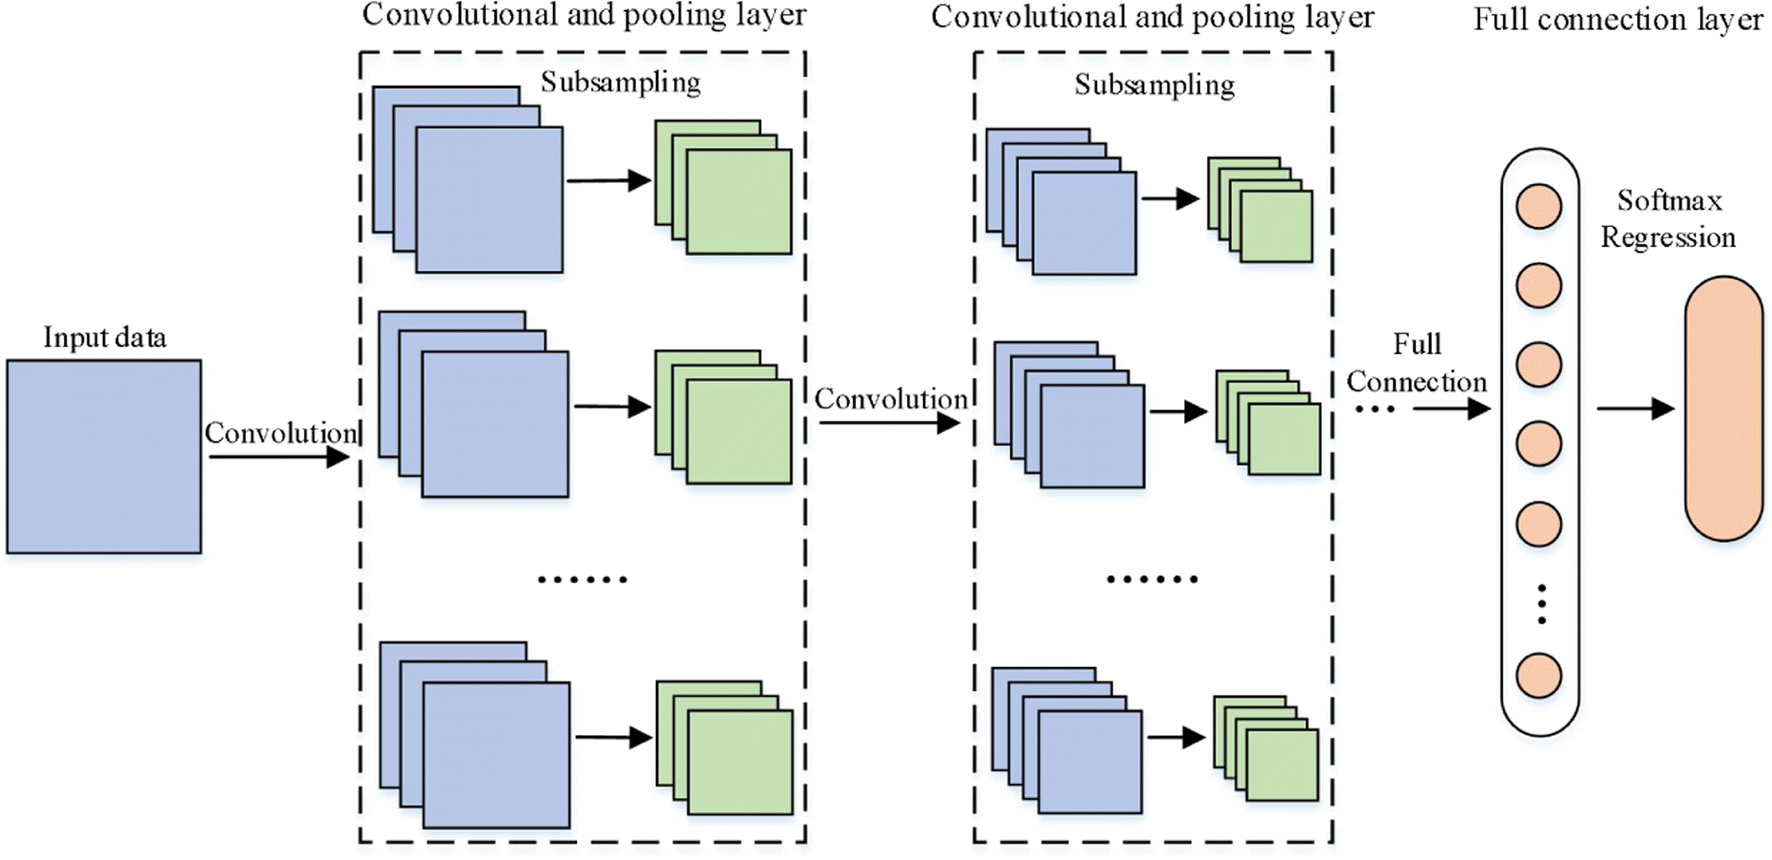 Application of Multiscale Learning Neural Network Based on